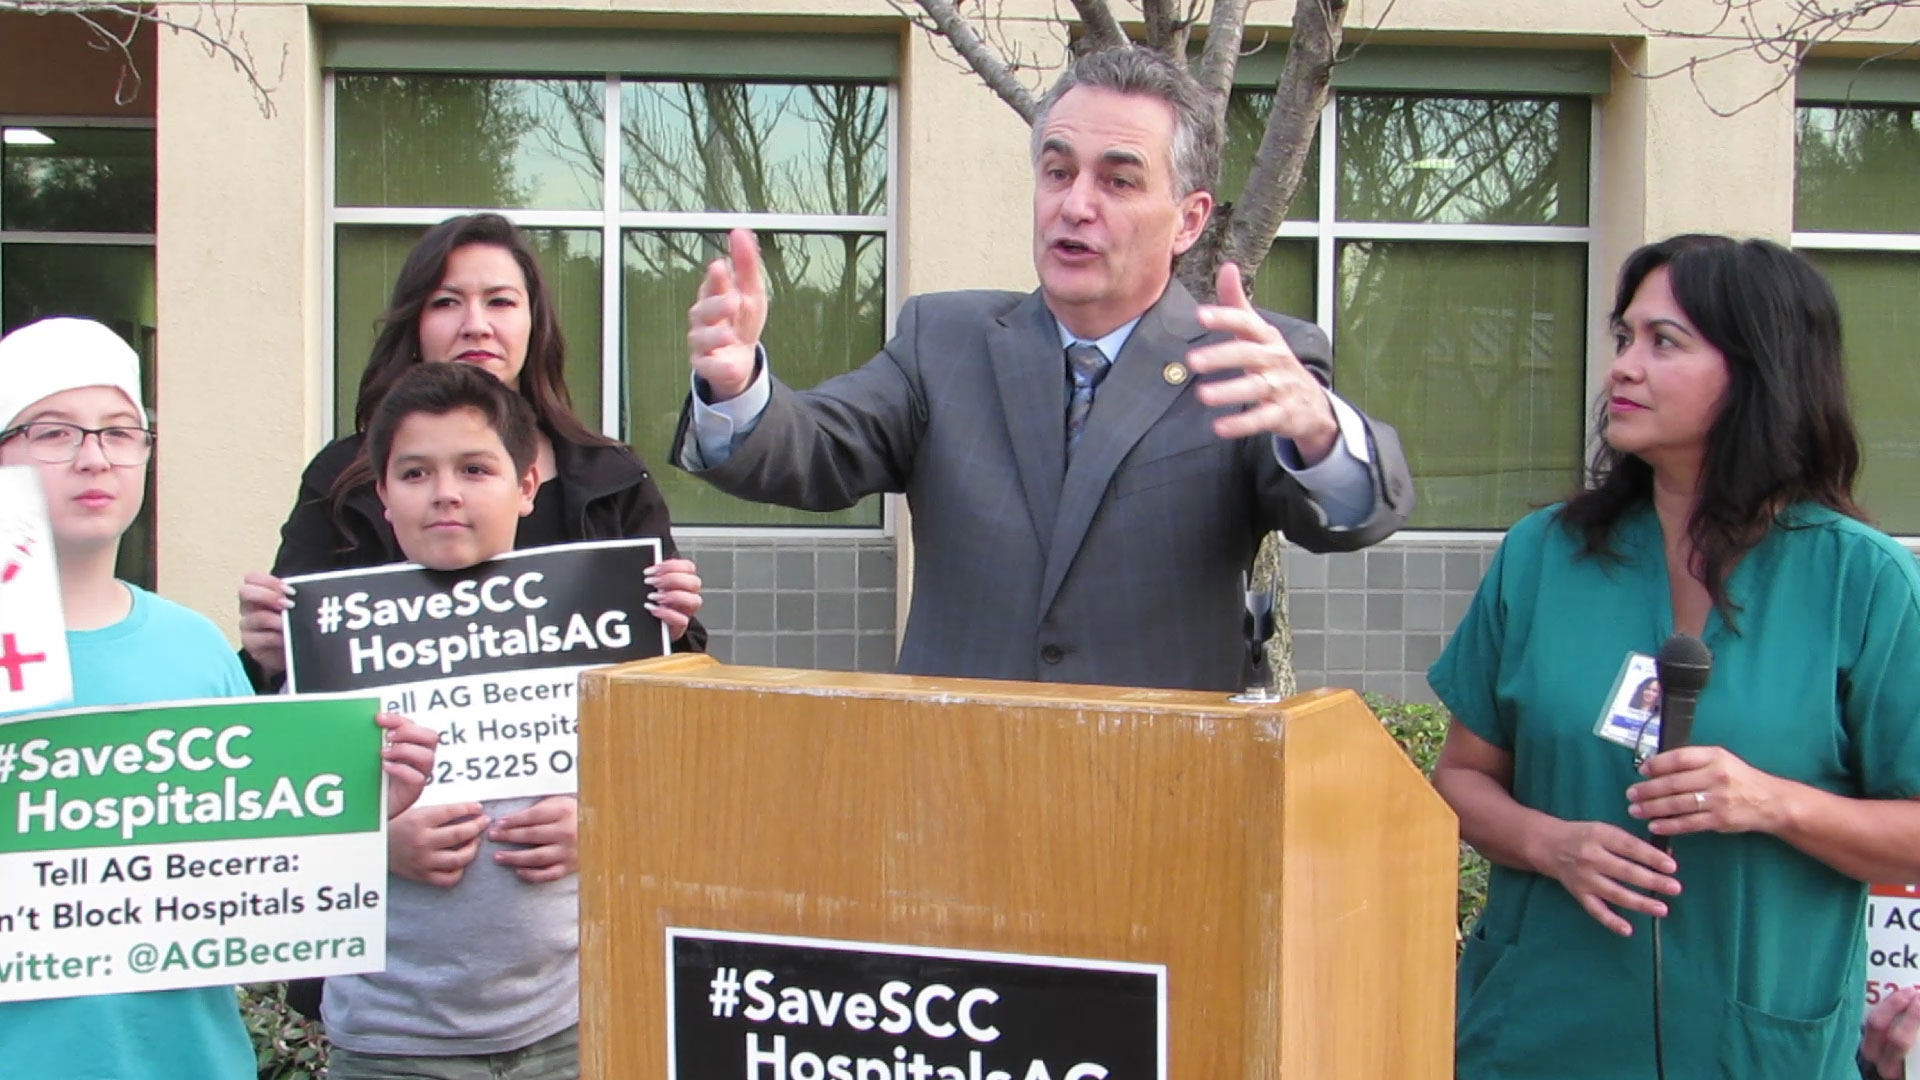 Main story: Locals worried about DOJ's attempt to block sale of hospitals